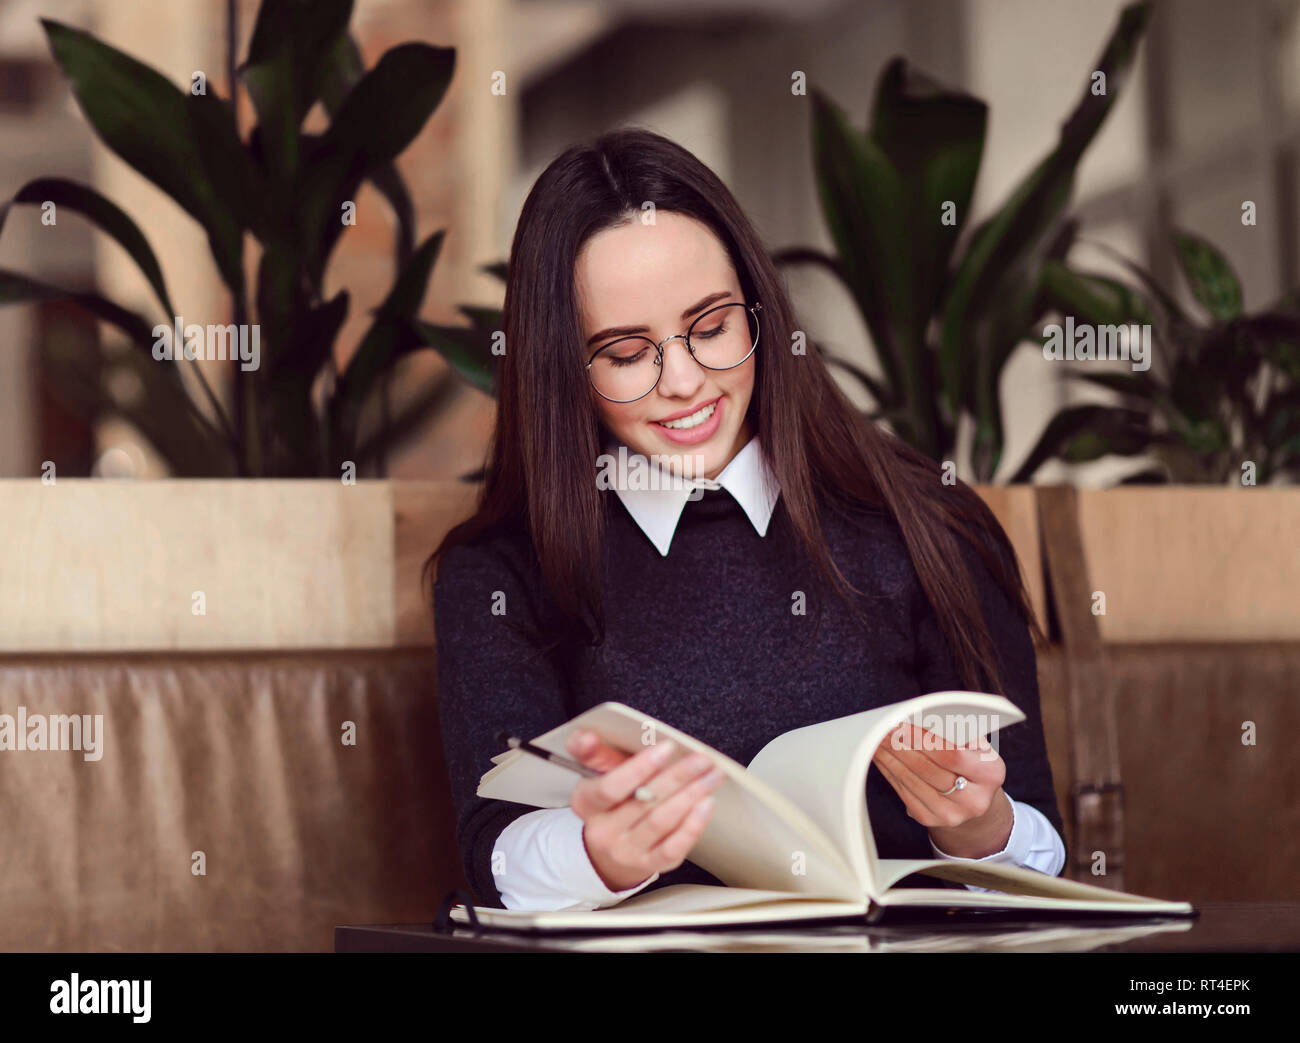 Cheerful girl in eyewear leafing through a notebook and searching sommething in it - Stock Image